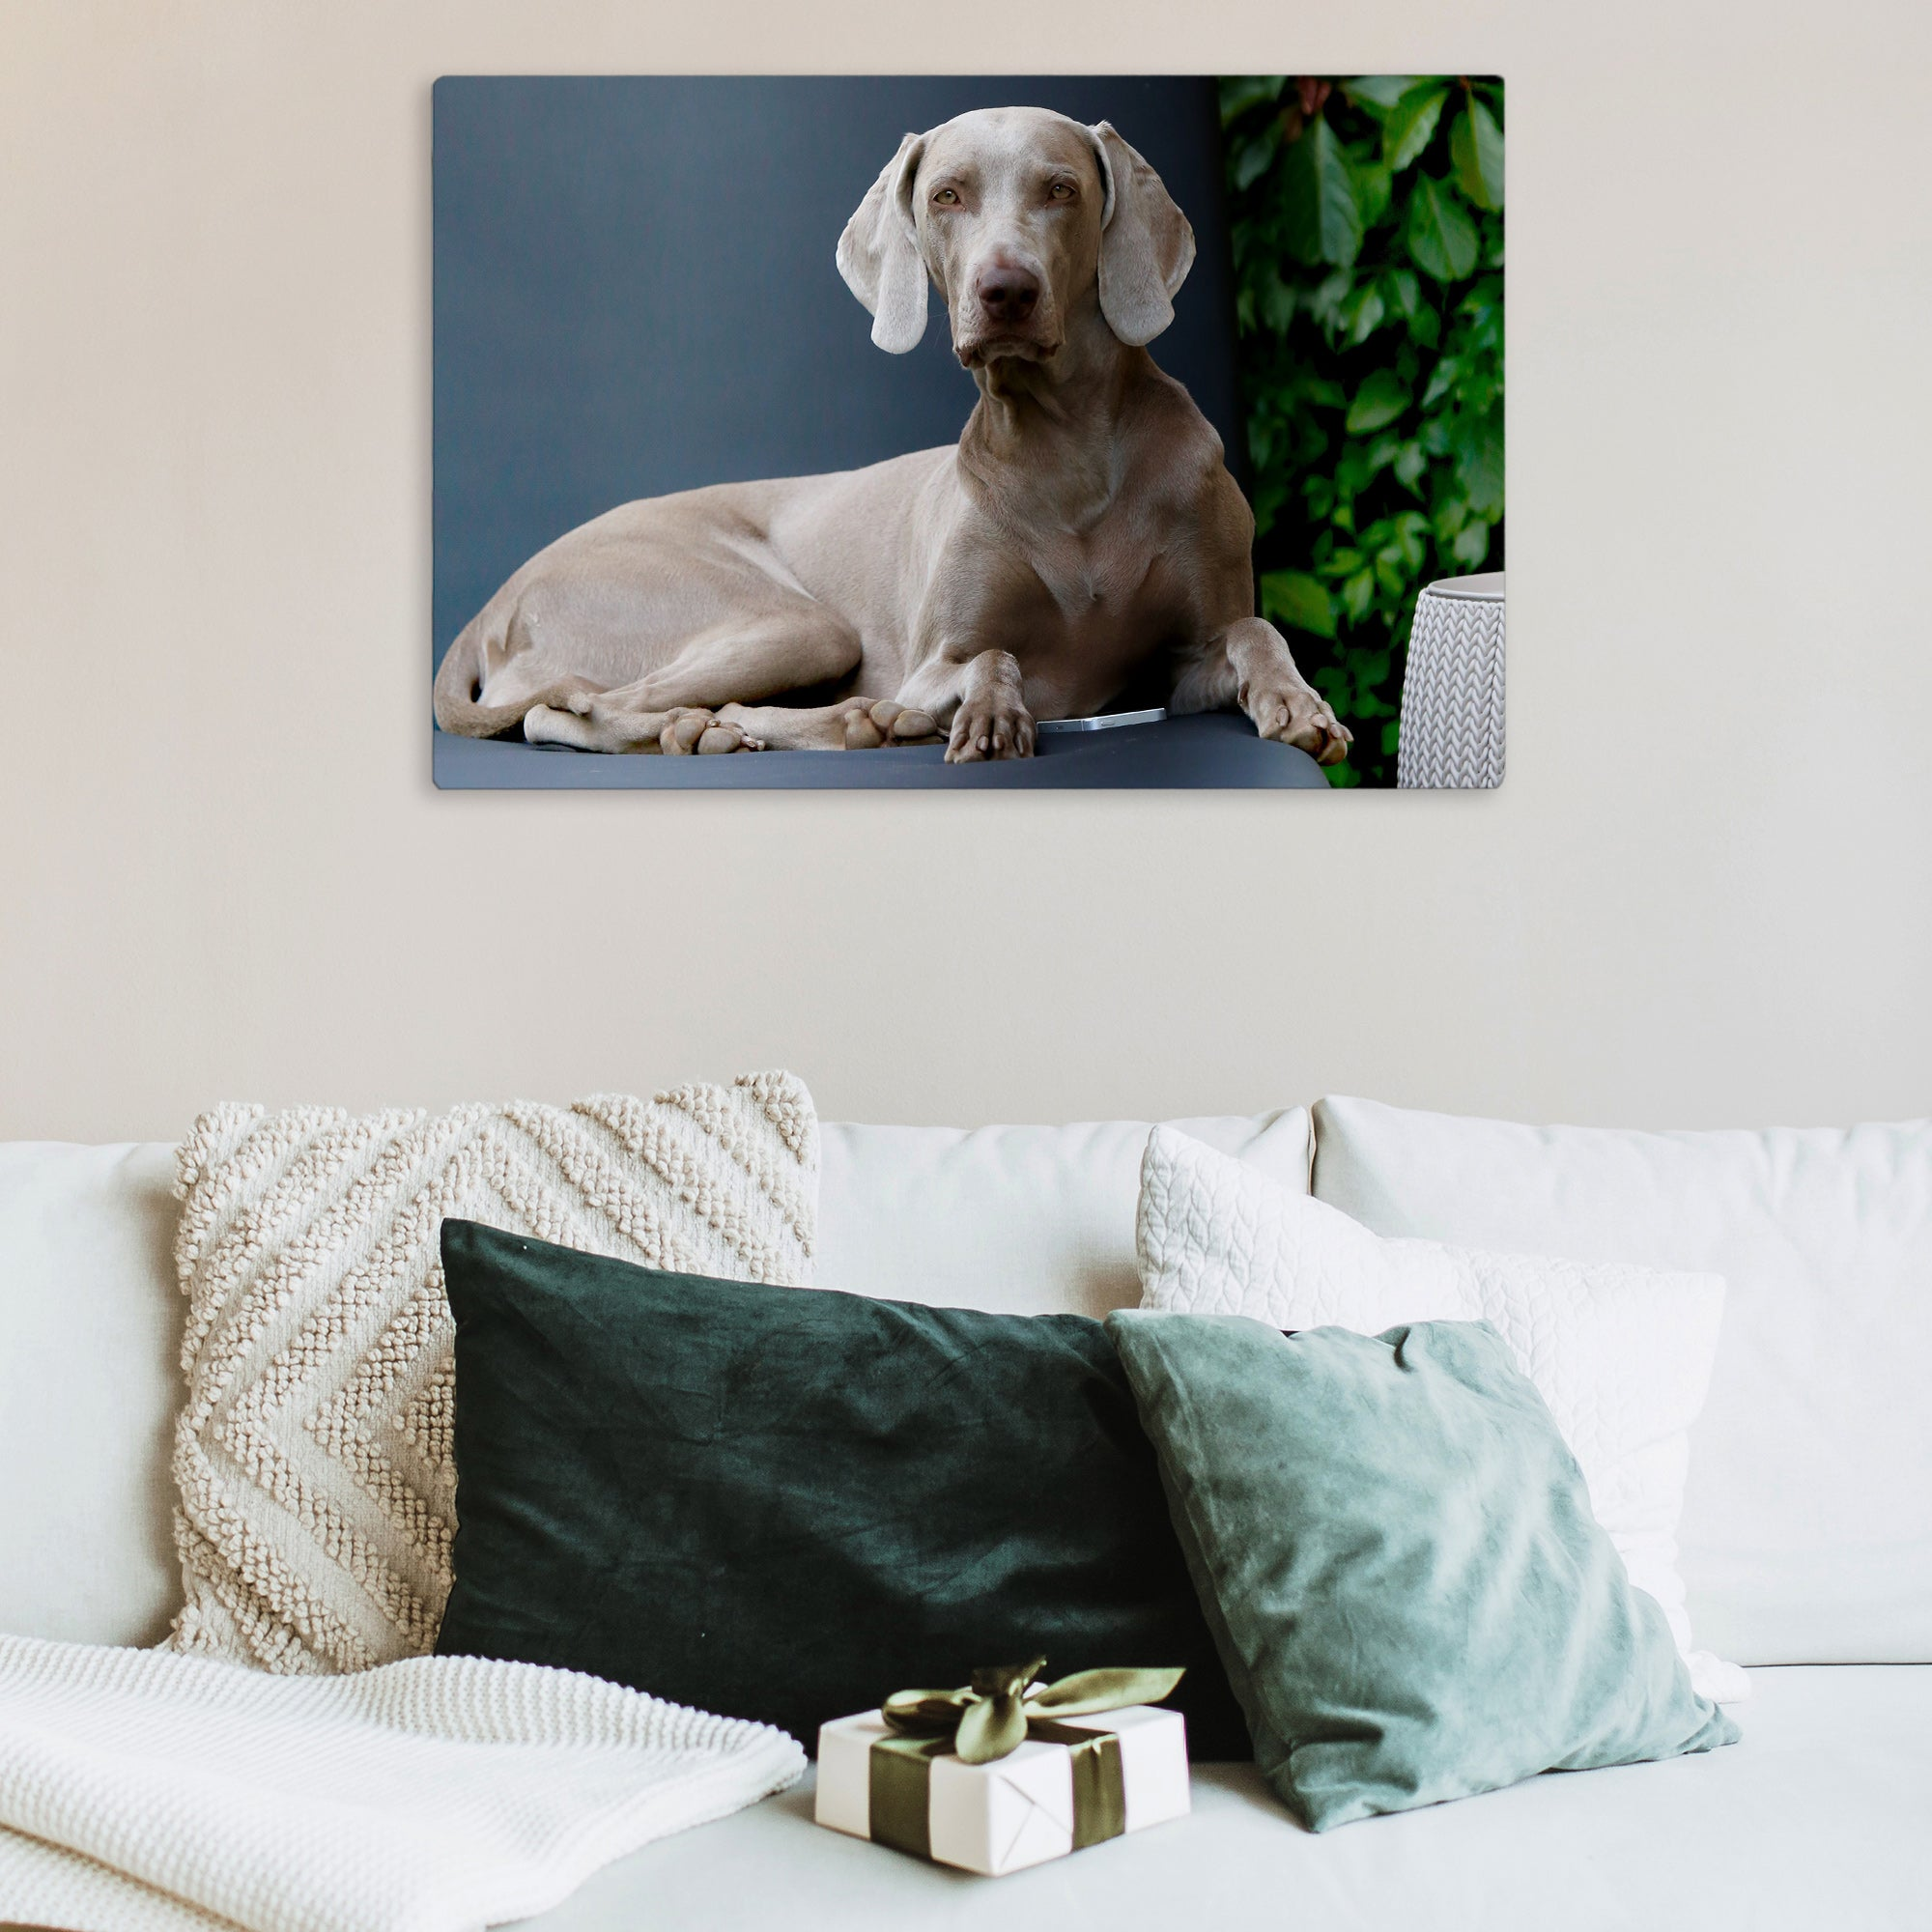 Posterjack HD Metal Print Photo of Dog